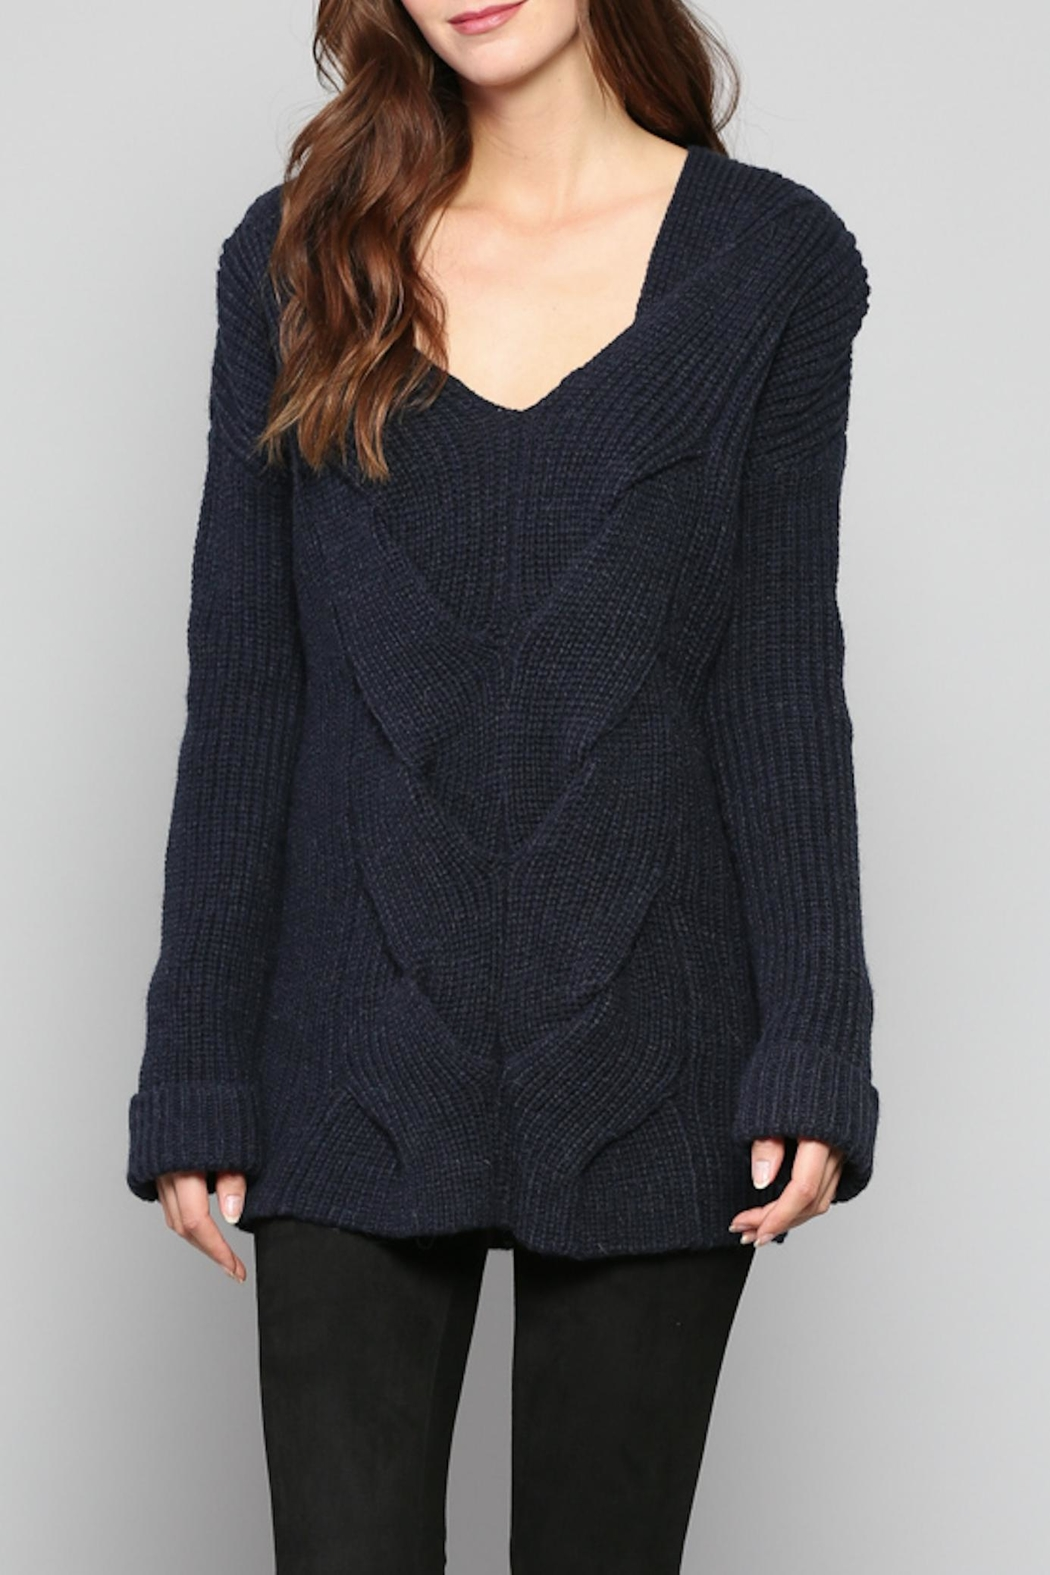 Rose & Eye Navy Cable Knit Top - Front Cropped Image